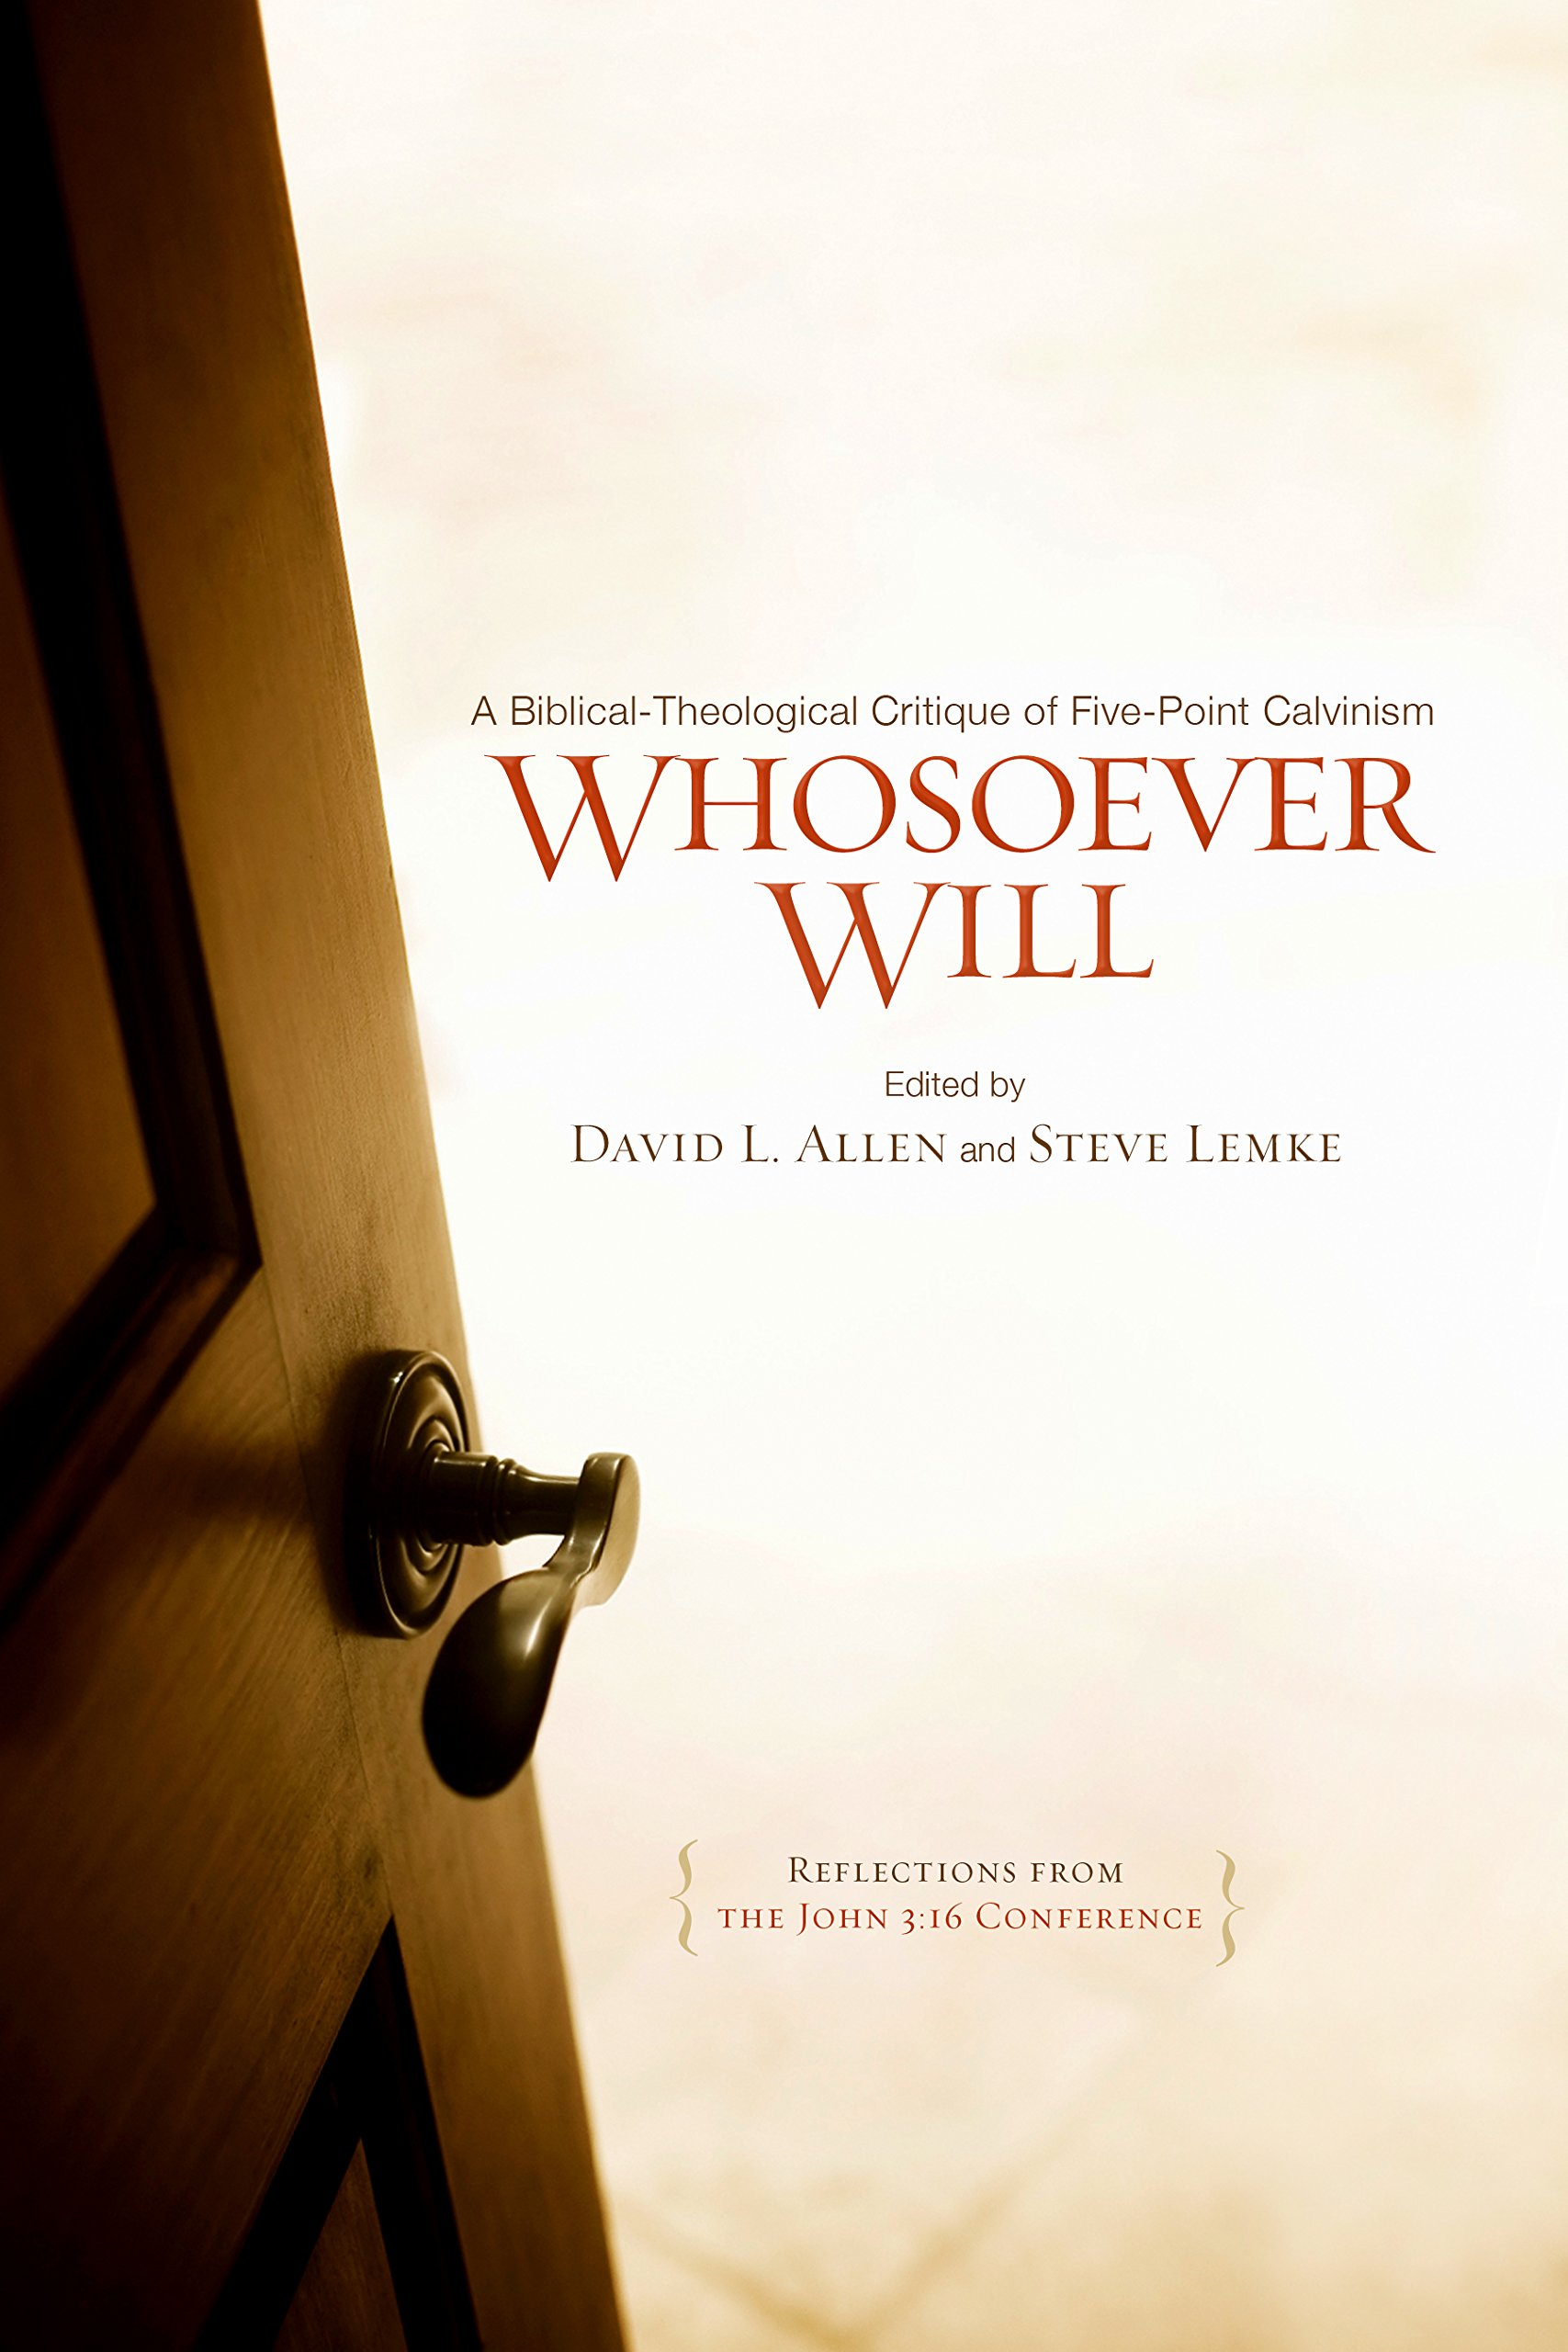 Whosoever Will: A Biblical-Theological Critique of Five-Point Calvinism by B & H Publishing Group